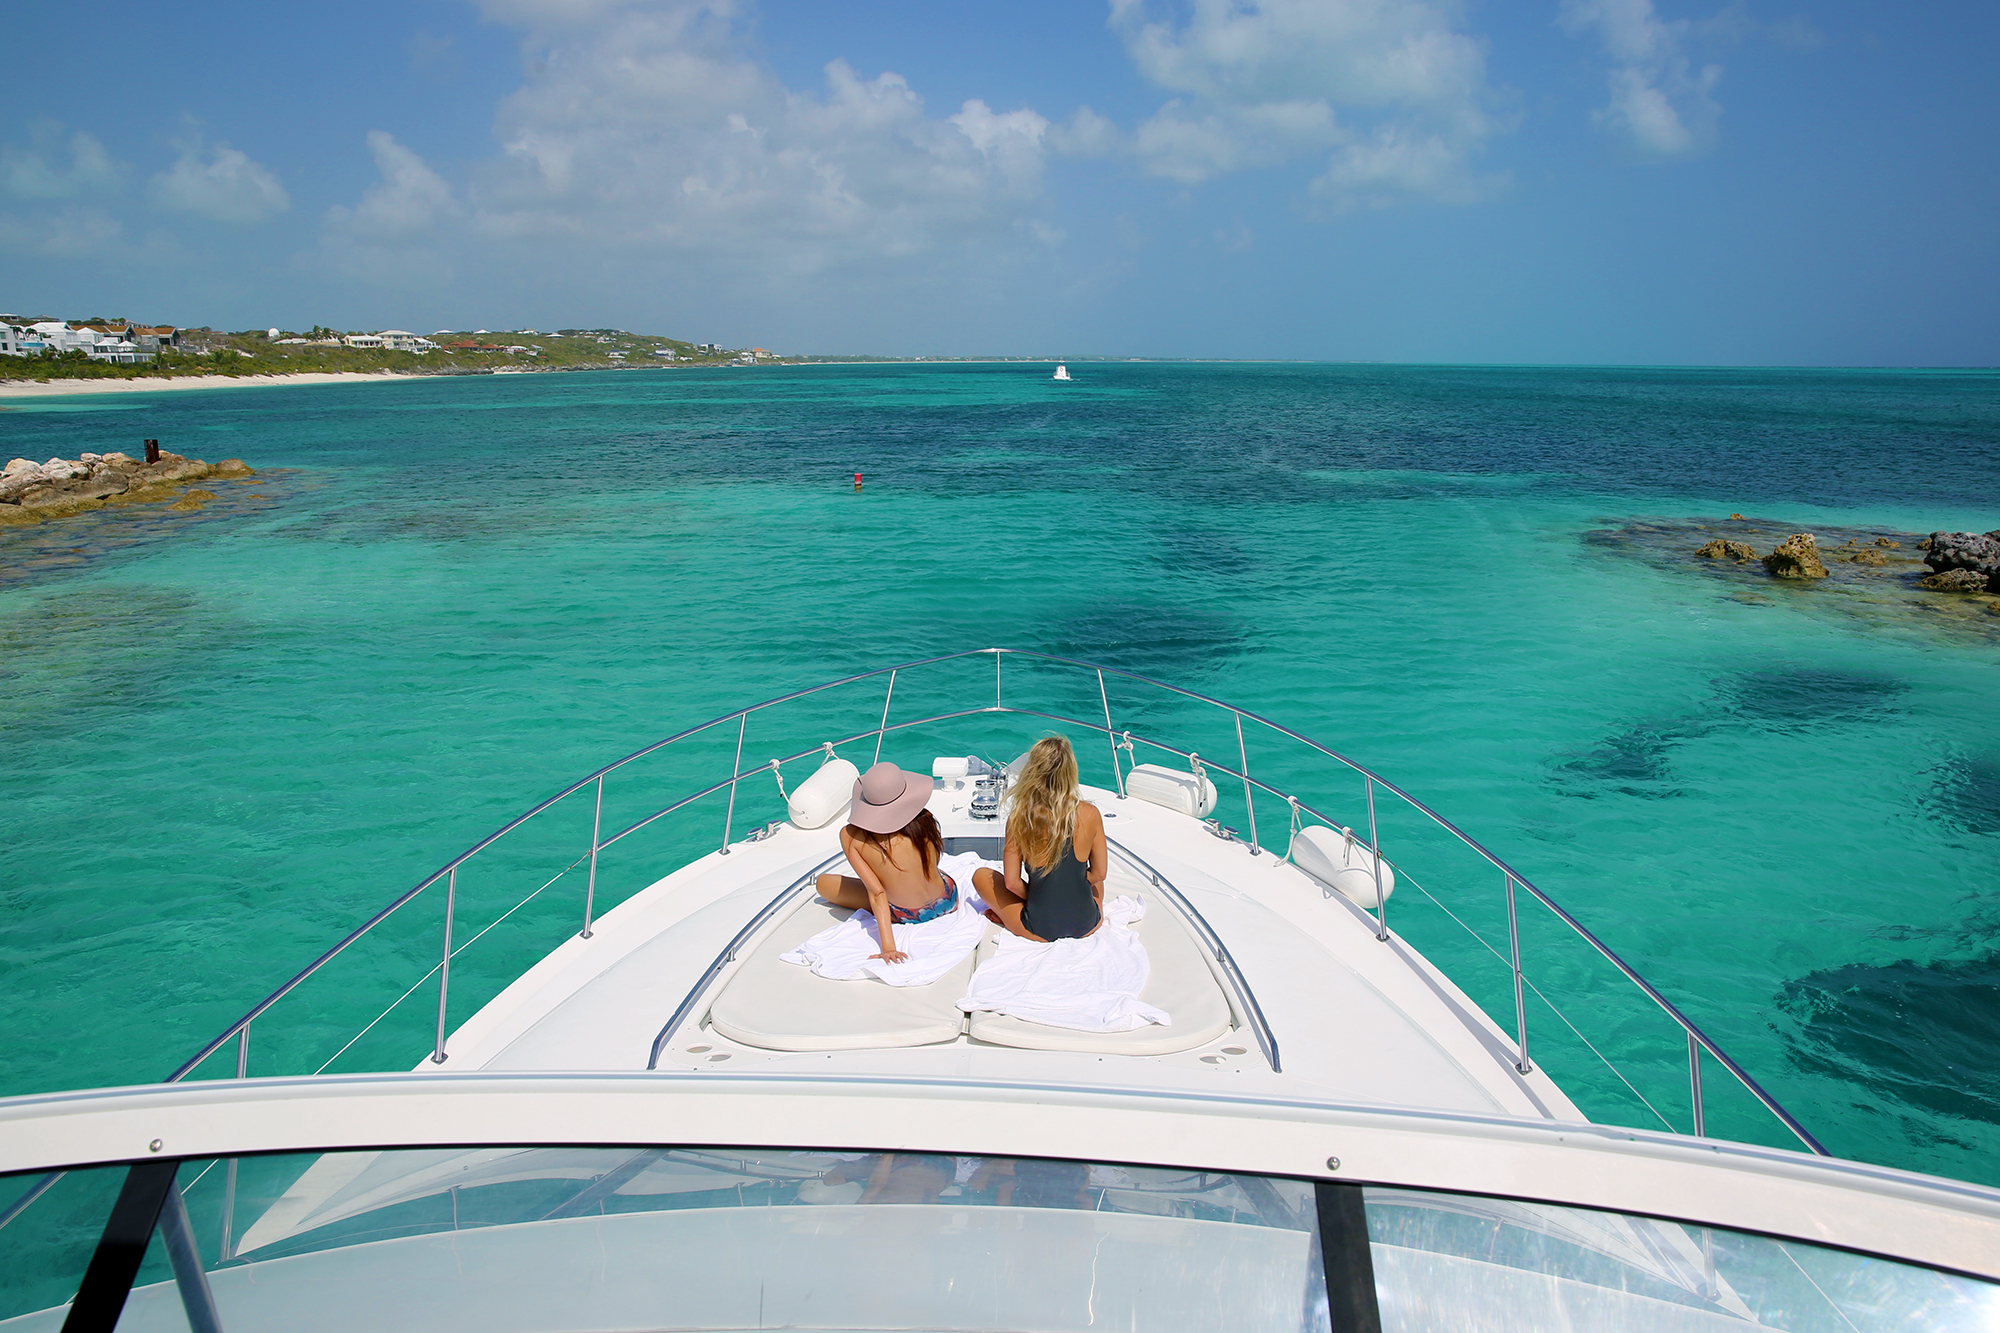 Luxury Motor Yacht Day Charter